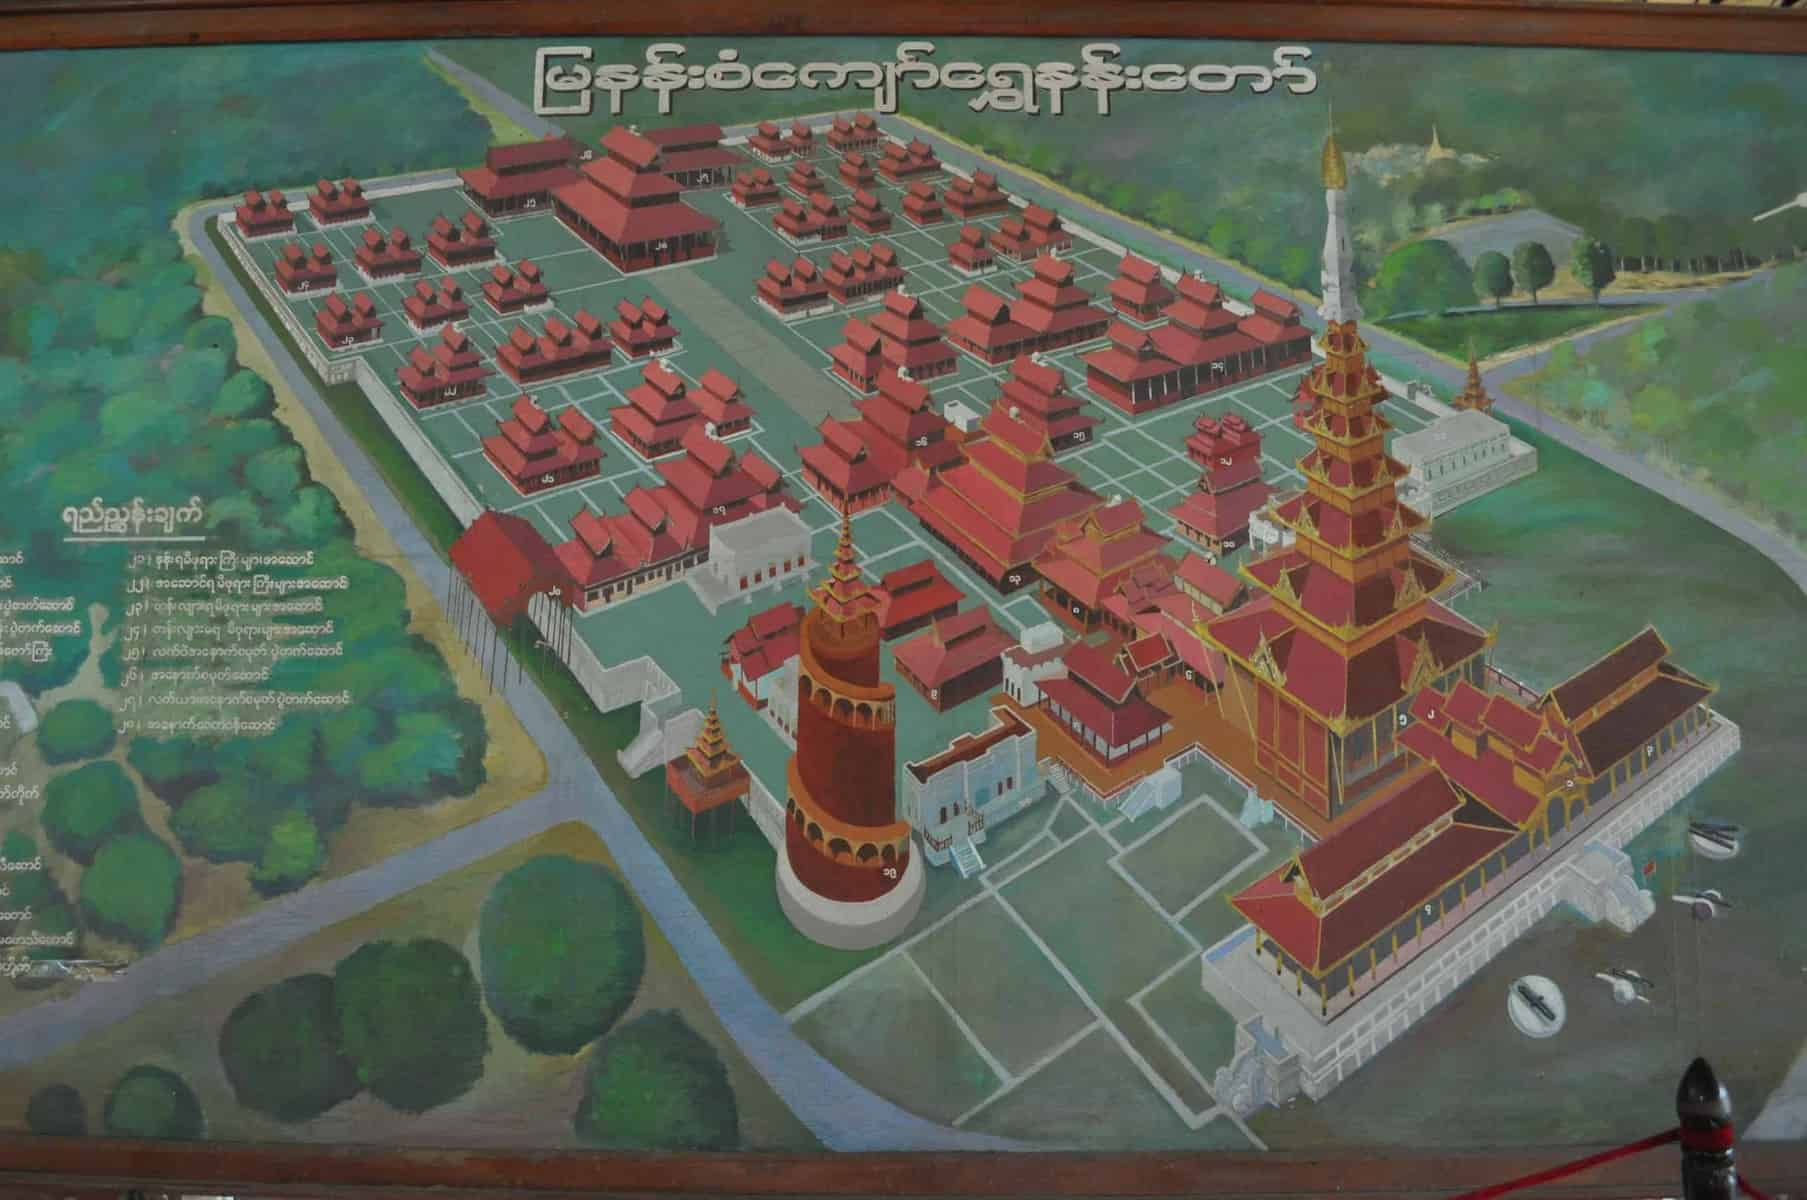 Mandalay Hill Memeory Palace in Permaculture Master Planning